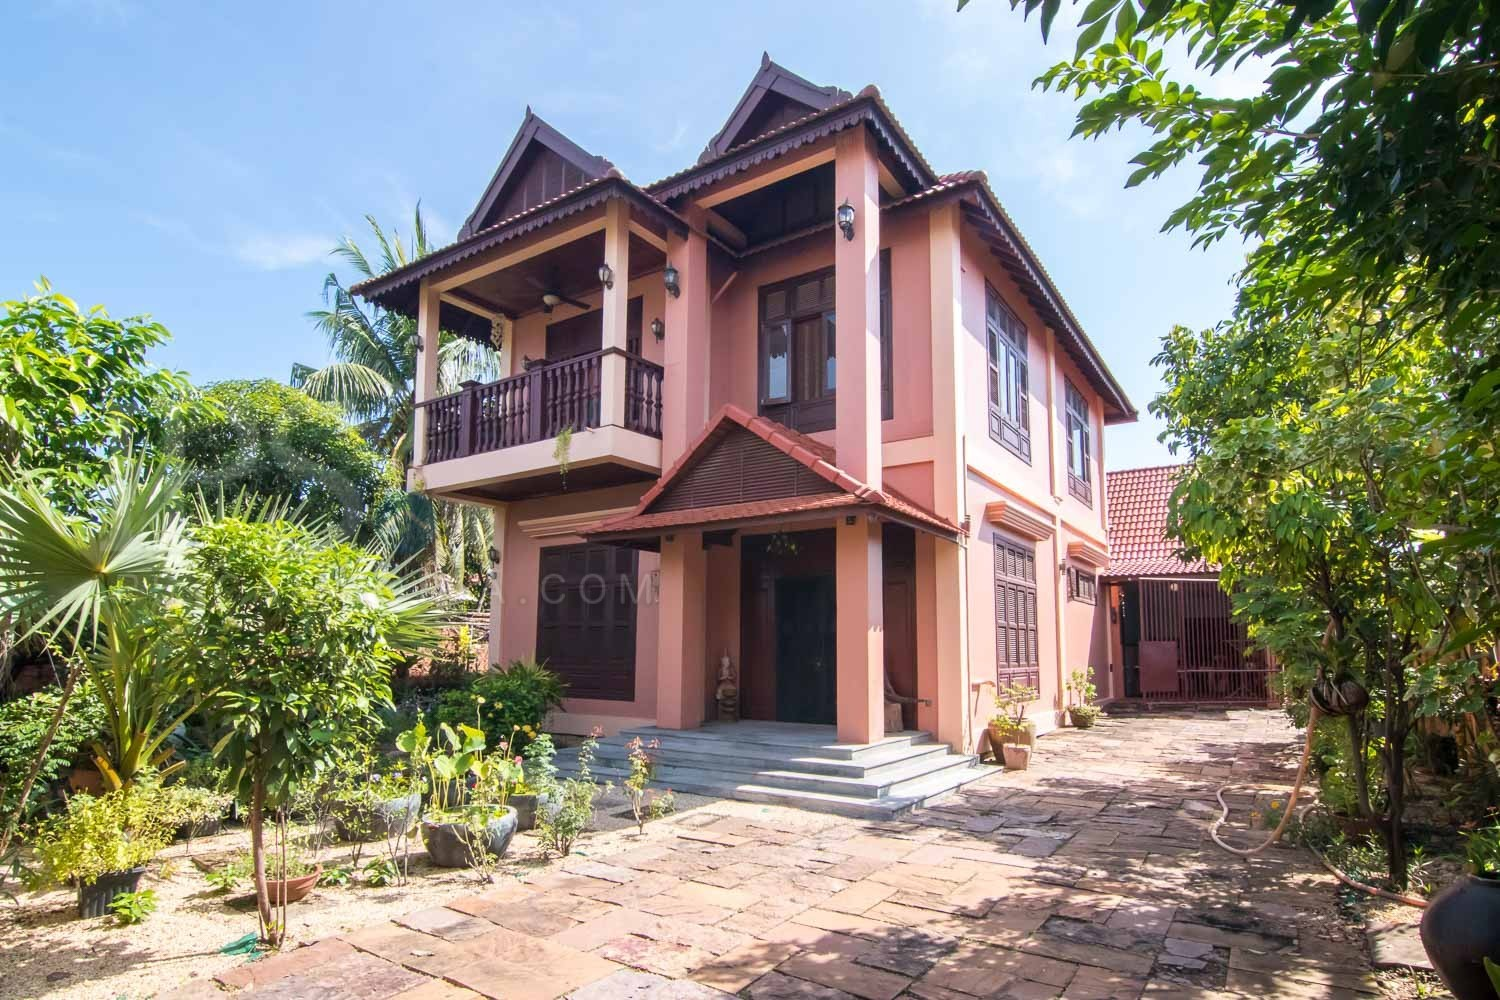 4 Bedroom  Villa For Sale,Kouk Chak,Siem Reap